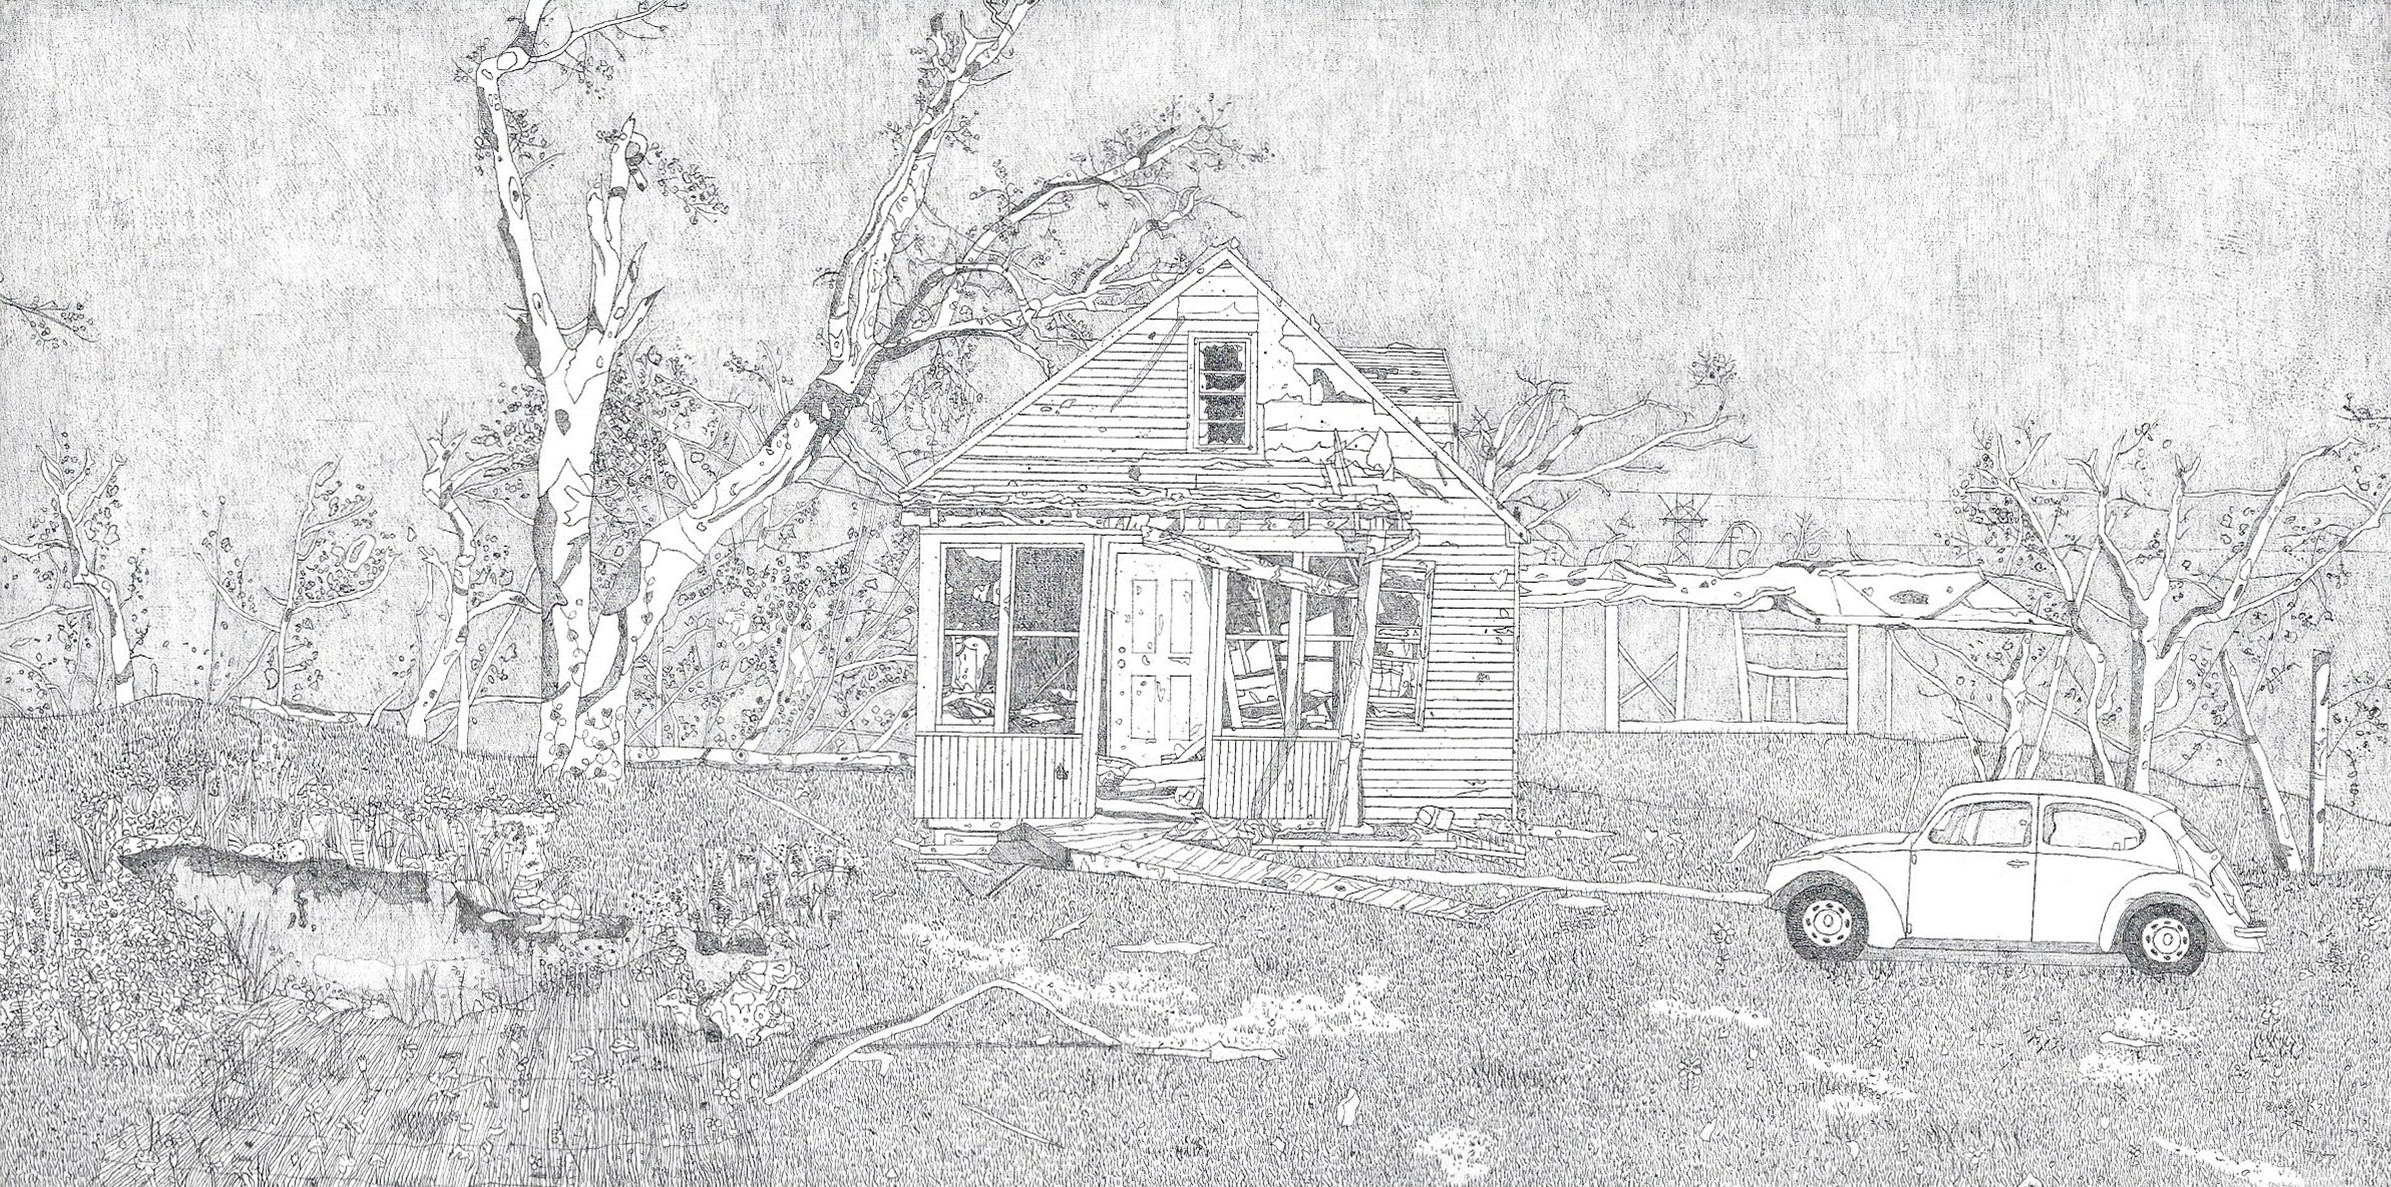 Drawing of a scene impacted by weather disaster; includes a broken house, damaged creek, and old car.